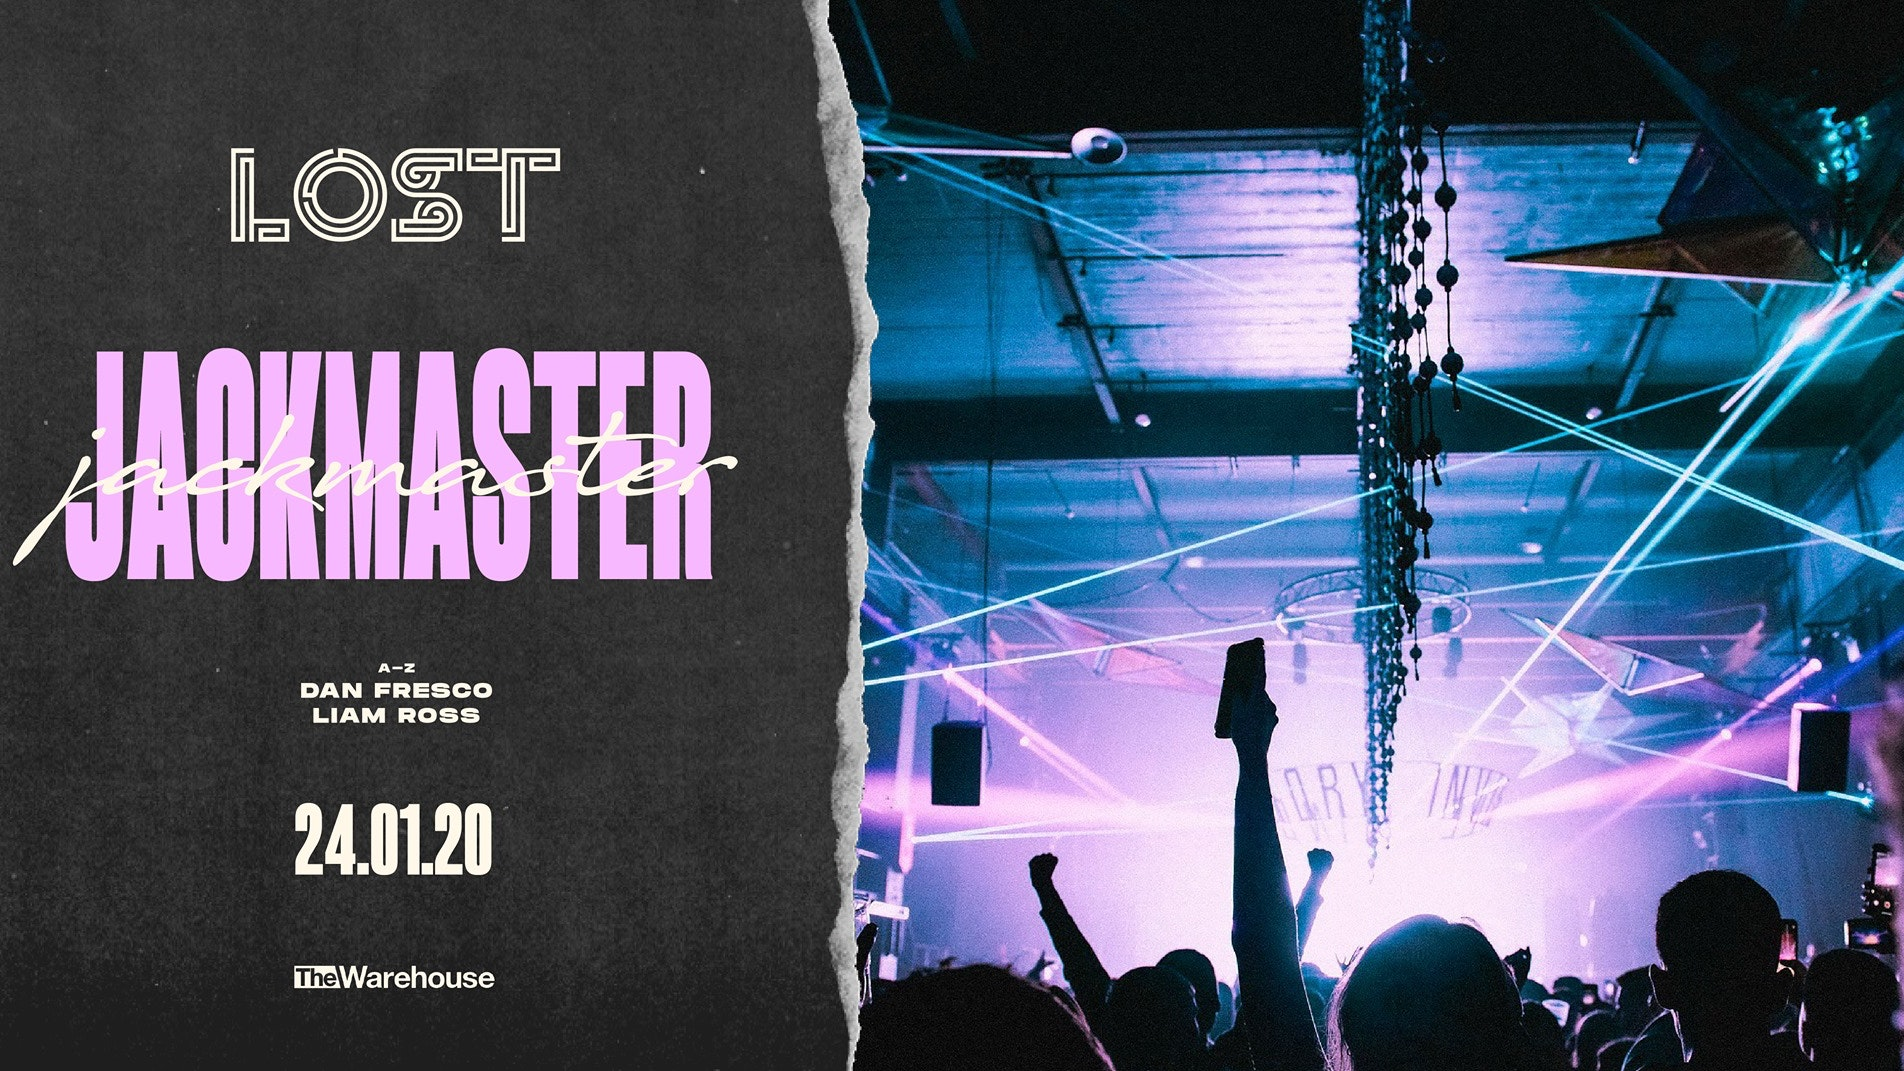 LOST w/ Jackmaster : The Warehouse Leeds